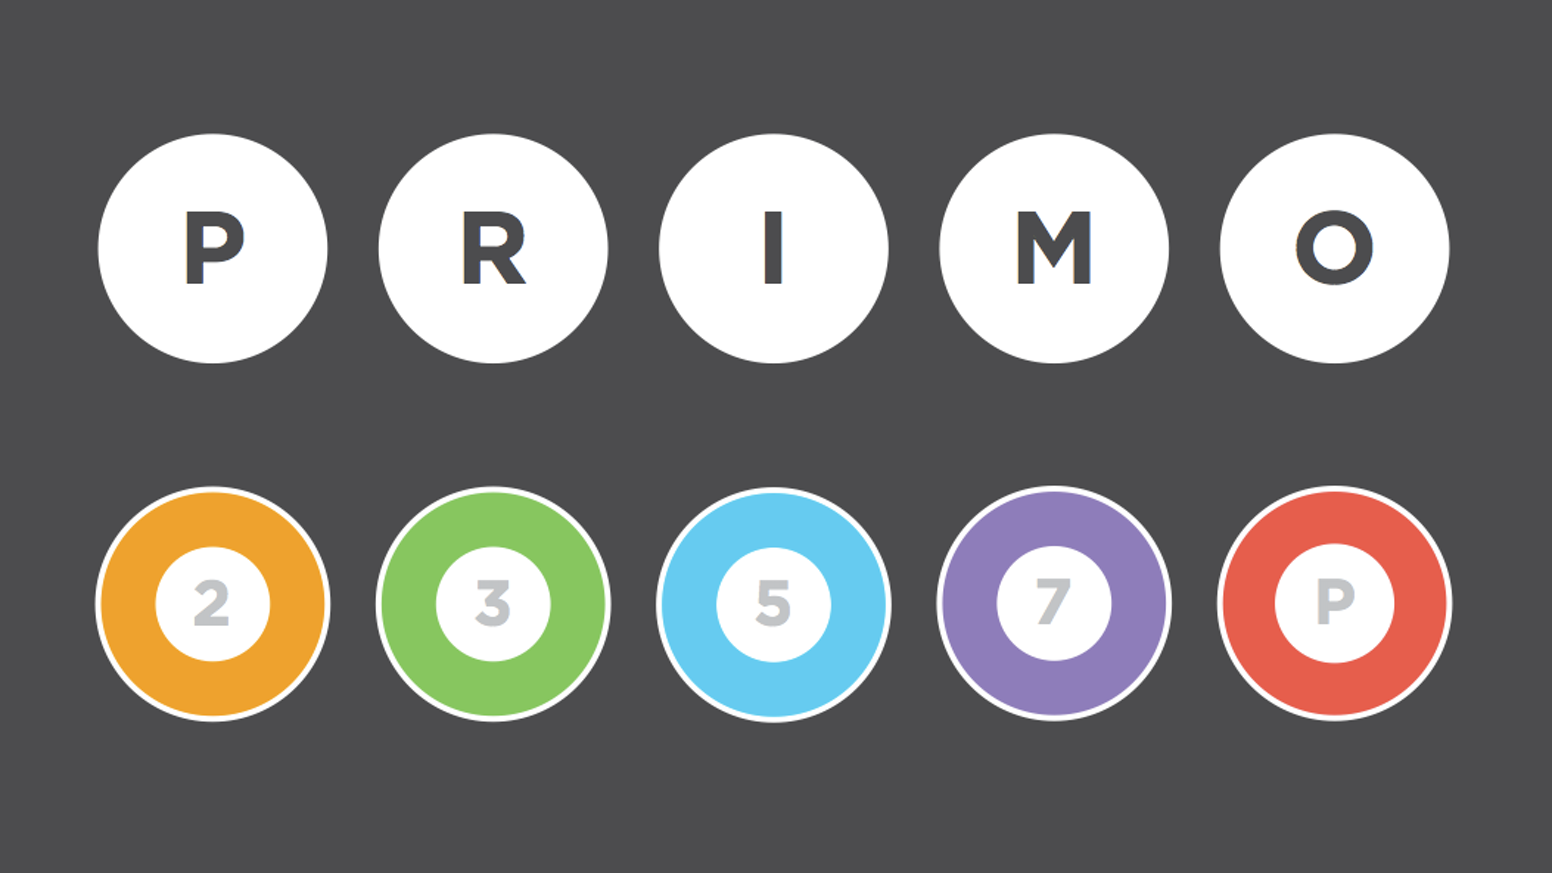 primo: the beautiful, colorful, mathematical board game by math for